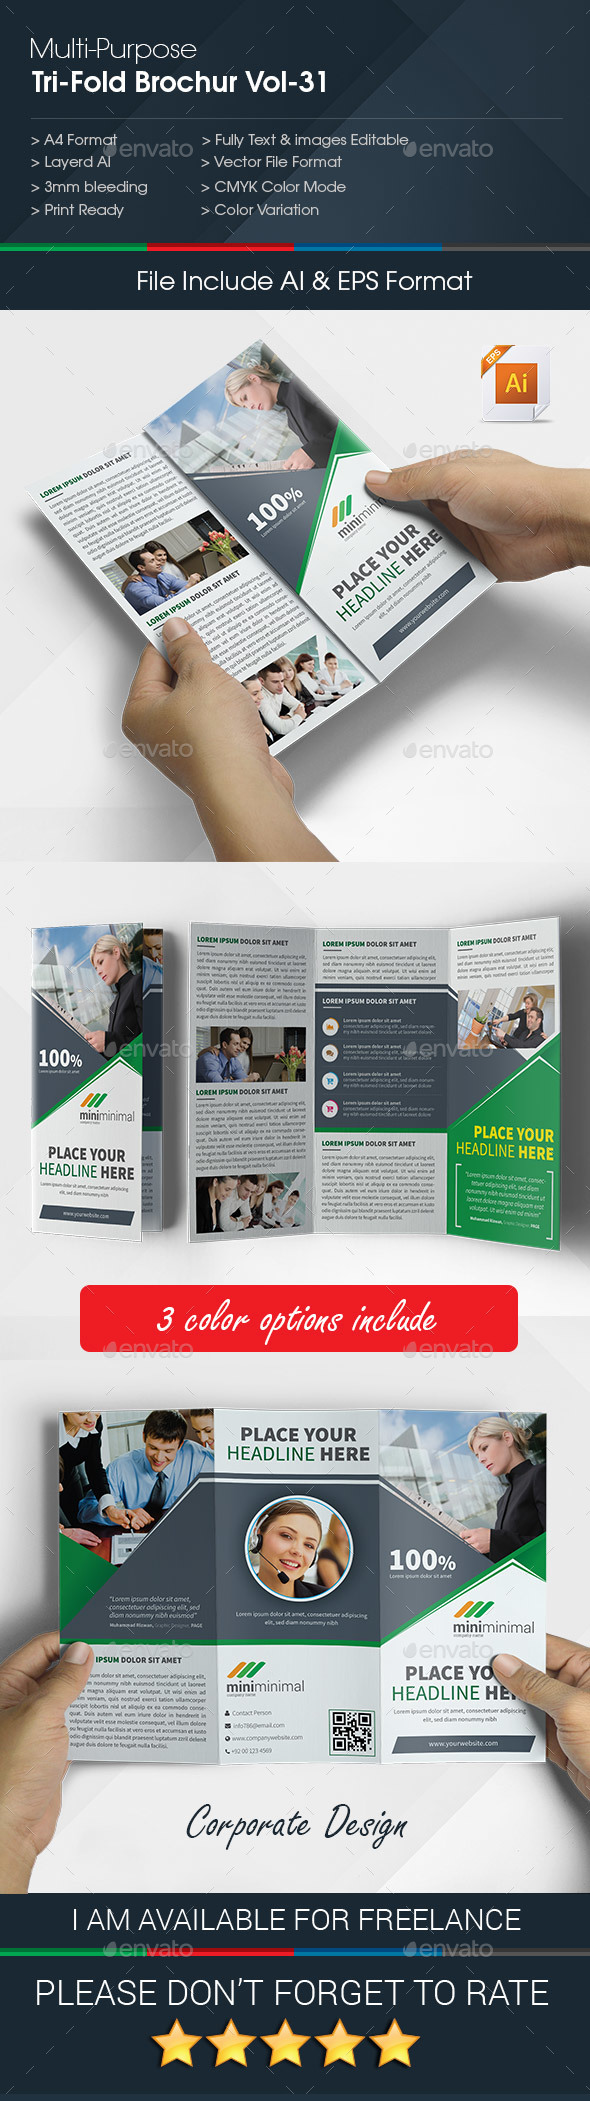 Multipurpose Business Tri-Fold Brochure Vol-31 - Corporate Brochures